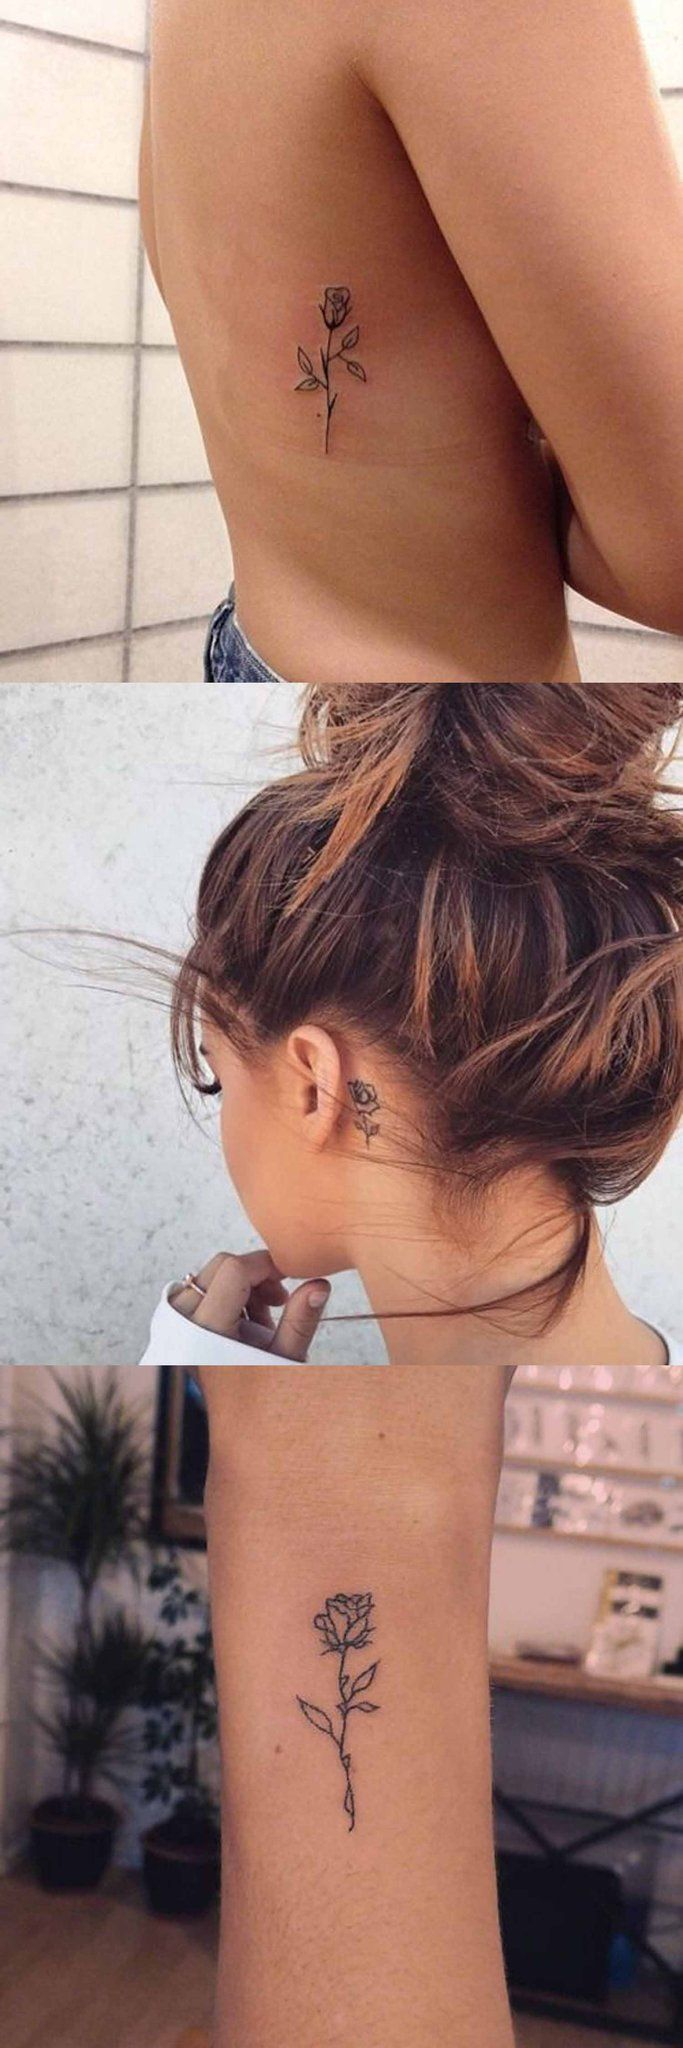 Small Flower Tattoo Ideas for Women at MyBodiAt.com - Rose Rib Back Tatt - Back of Neck Back of Ear Arm Minimal Floral Tat #tattoosforwomen